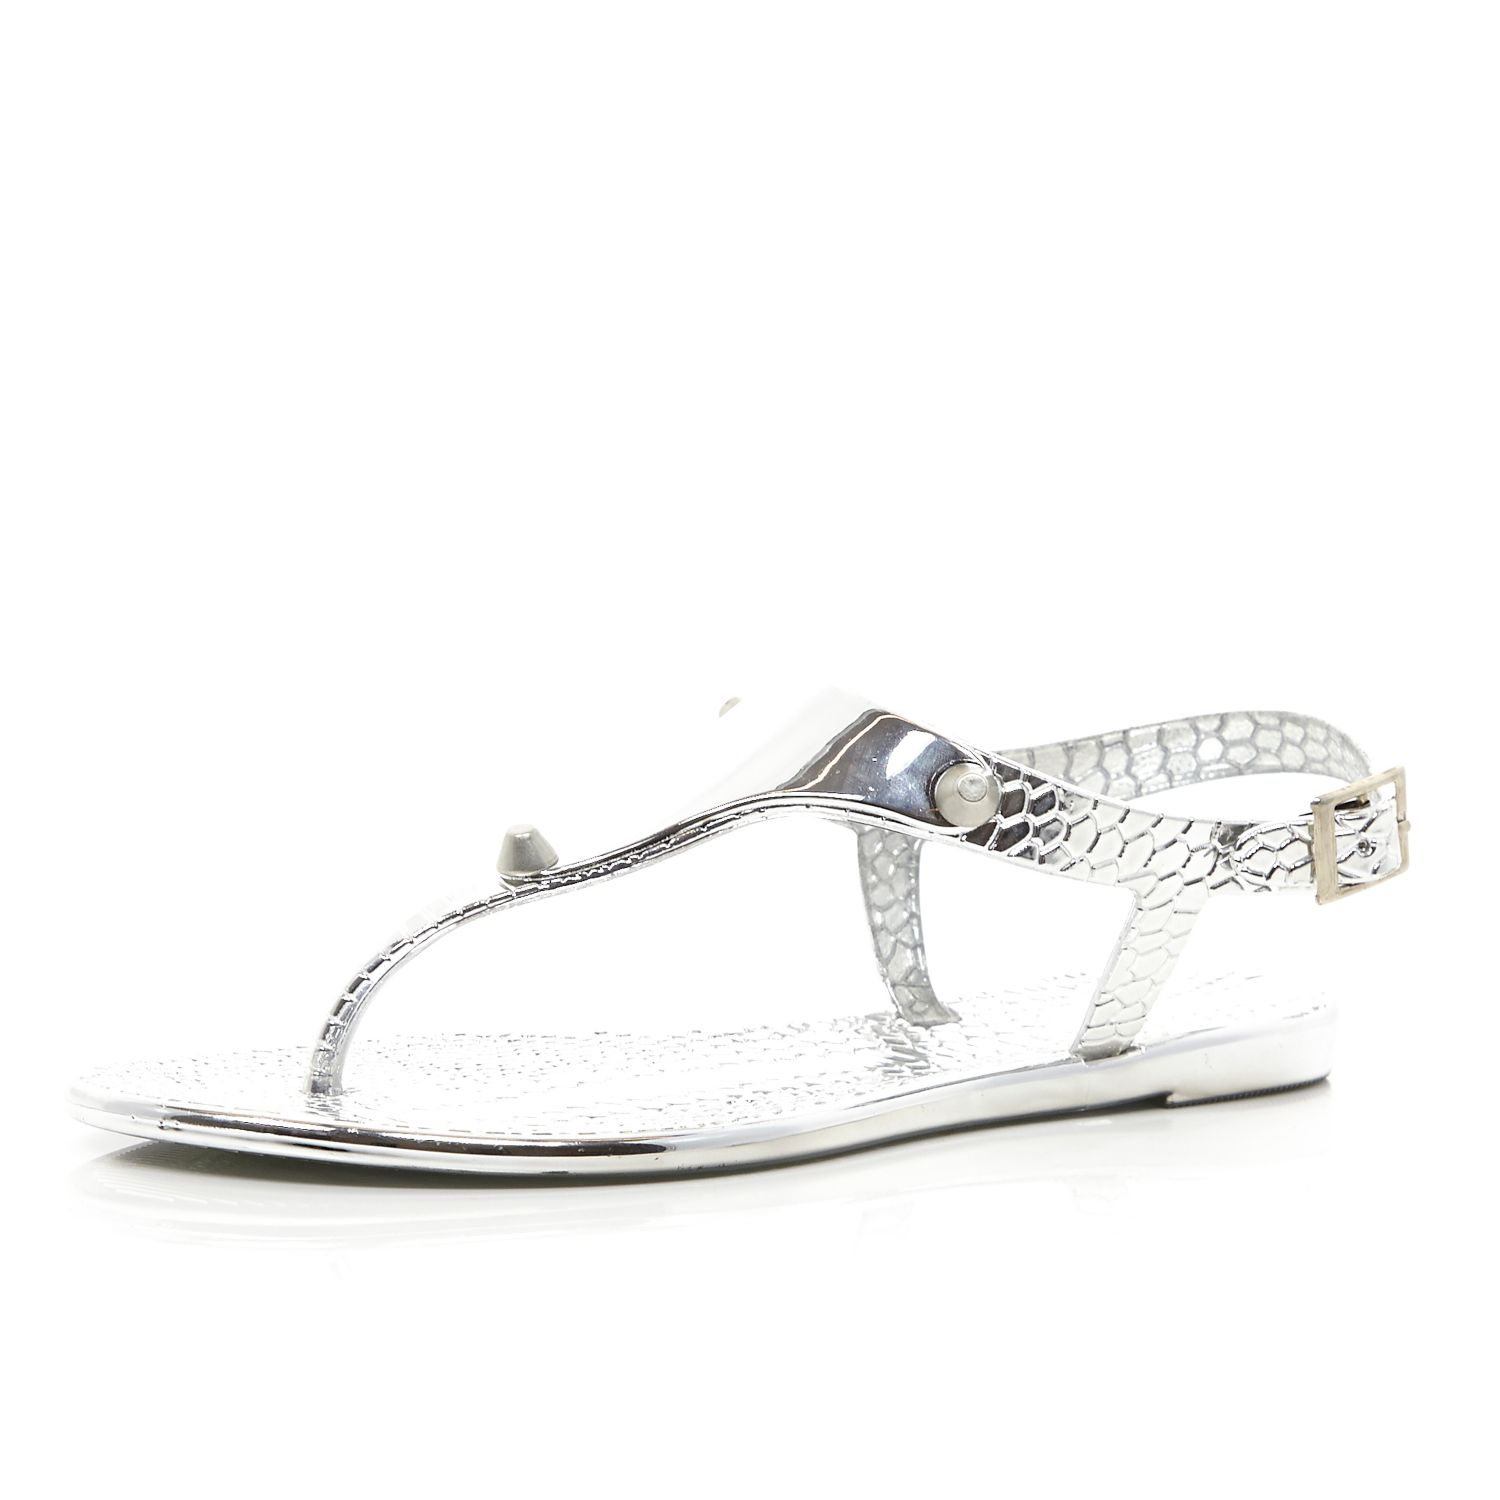 Black jelly sandals river island - Gallery